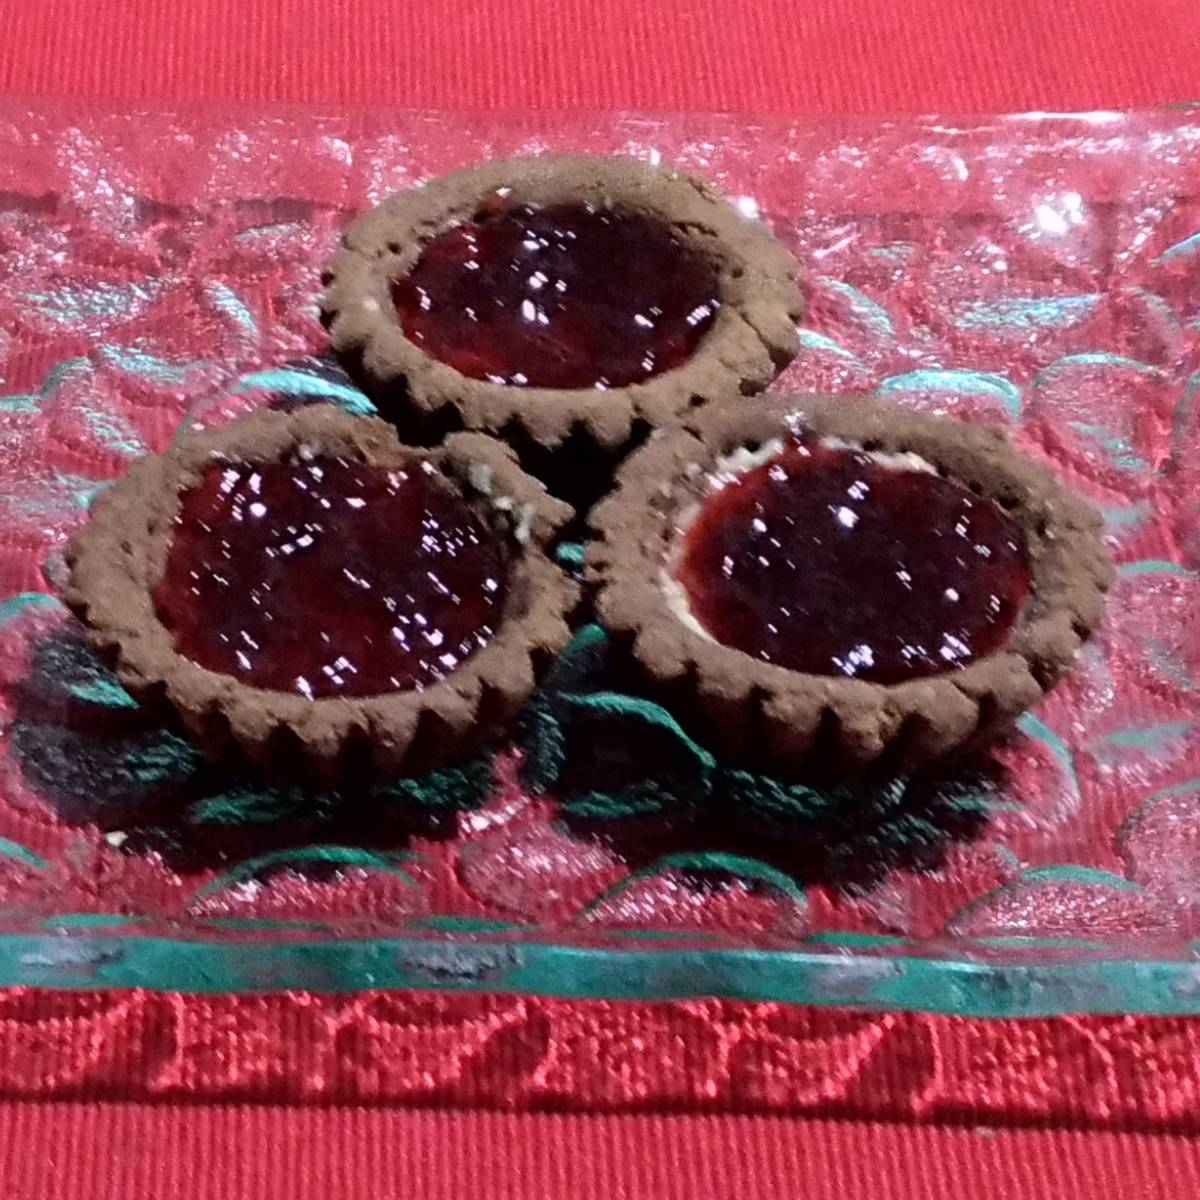 Mini Pie Strawberry Chocolate Crust(paket 3 Pieces)